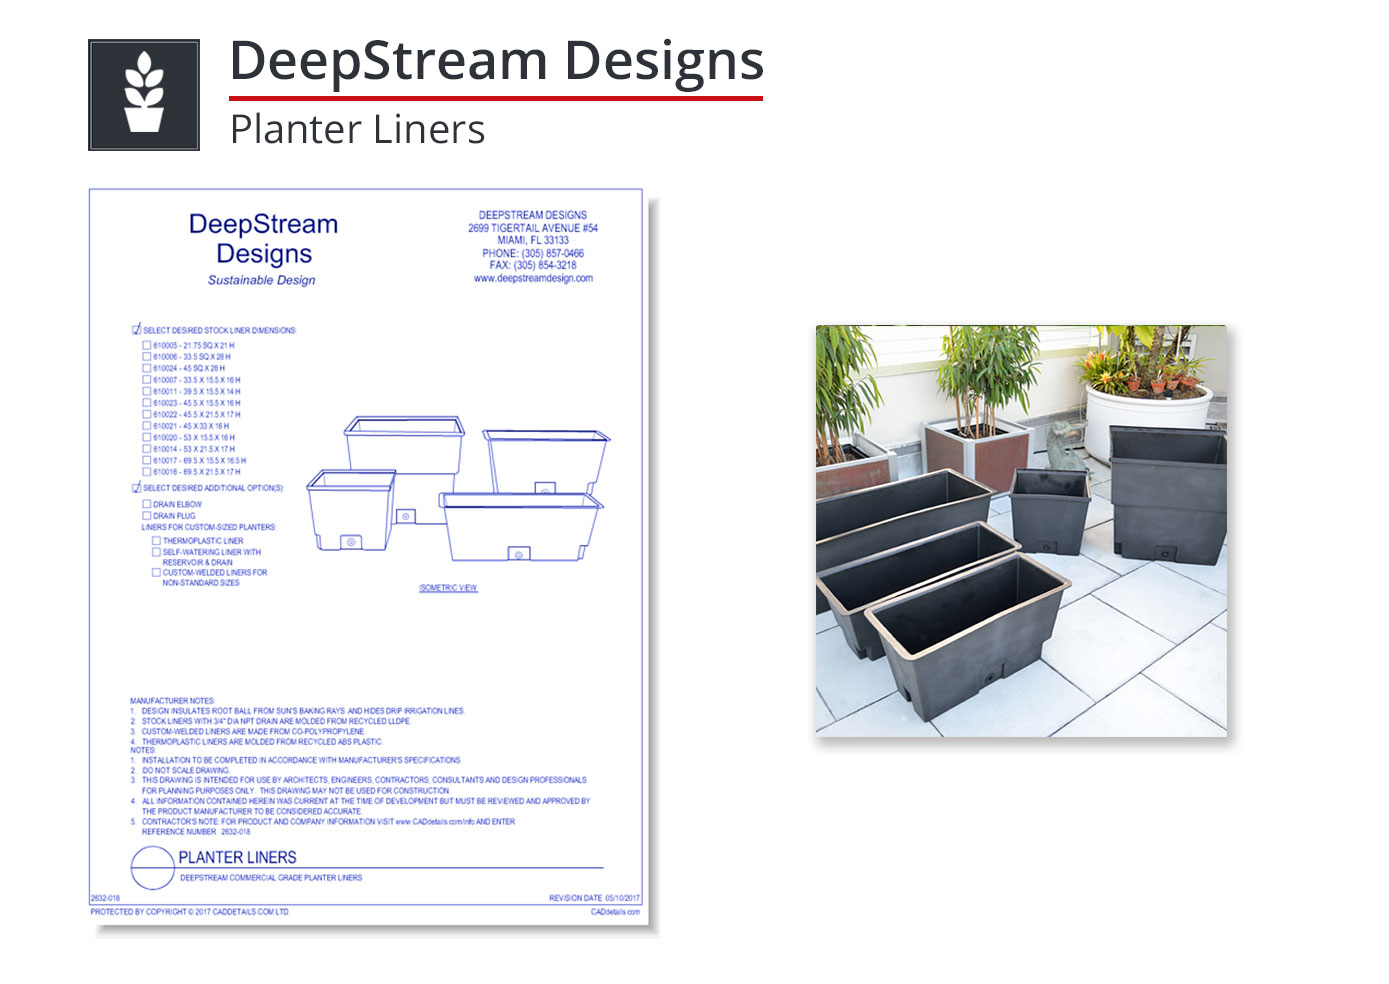 DeepStream-Designs-Planter-Liners-CAD-Drawing.jpg